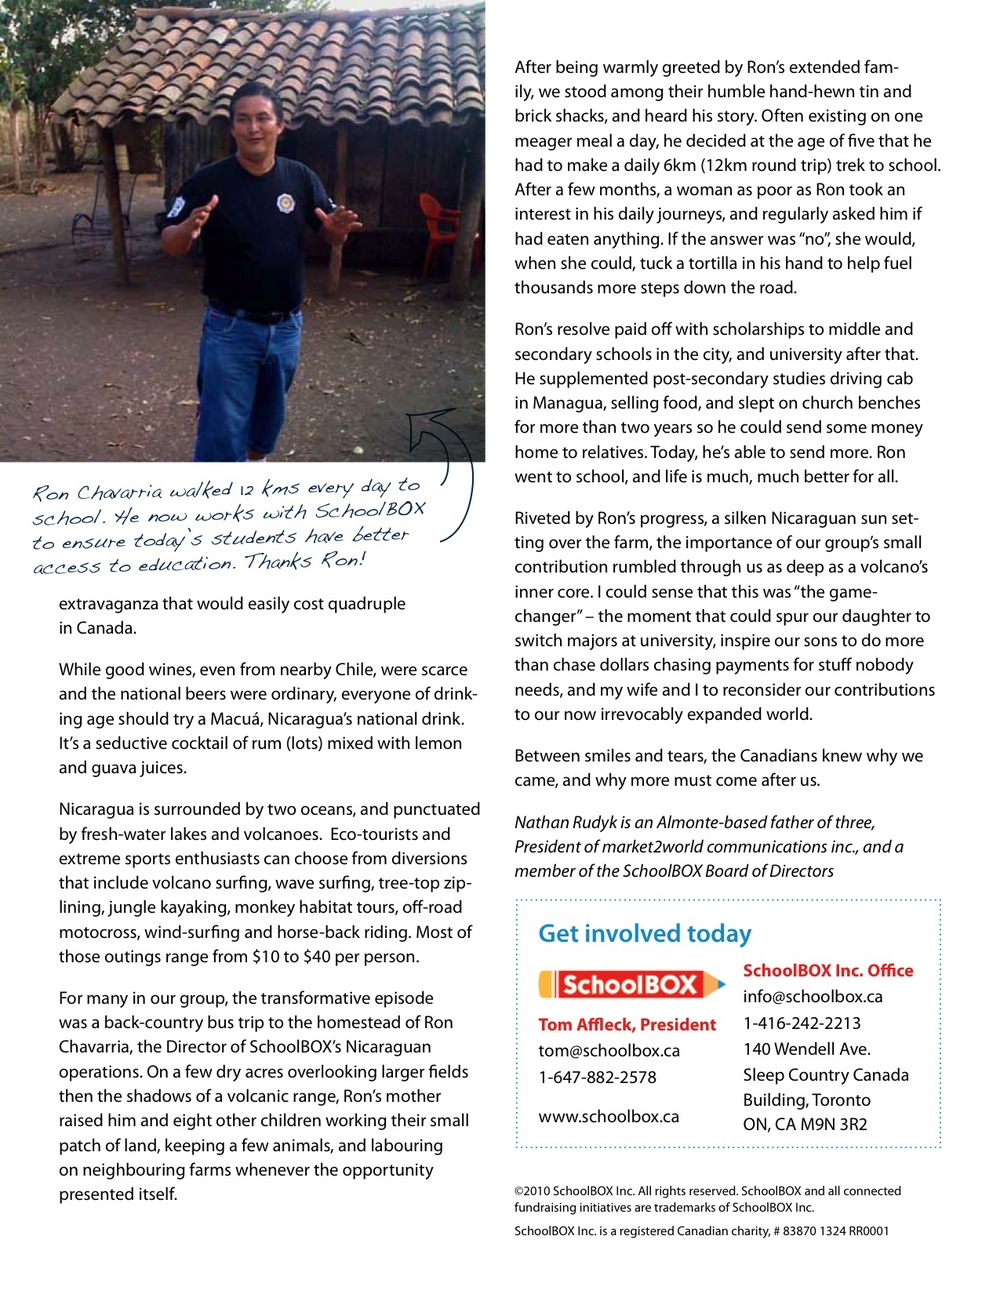 SchoolBOX_DayintheLife_VIEW-page4.jpg